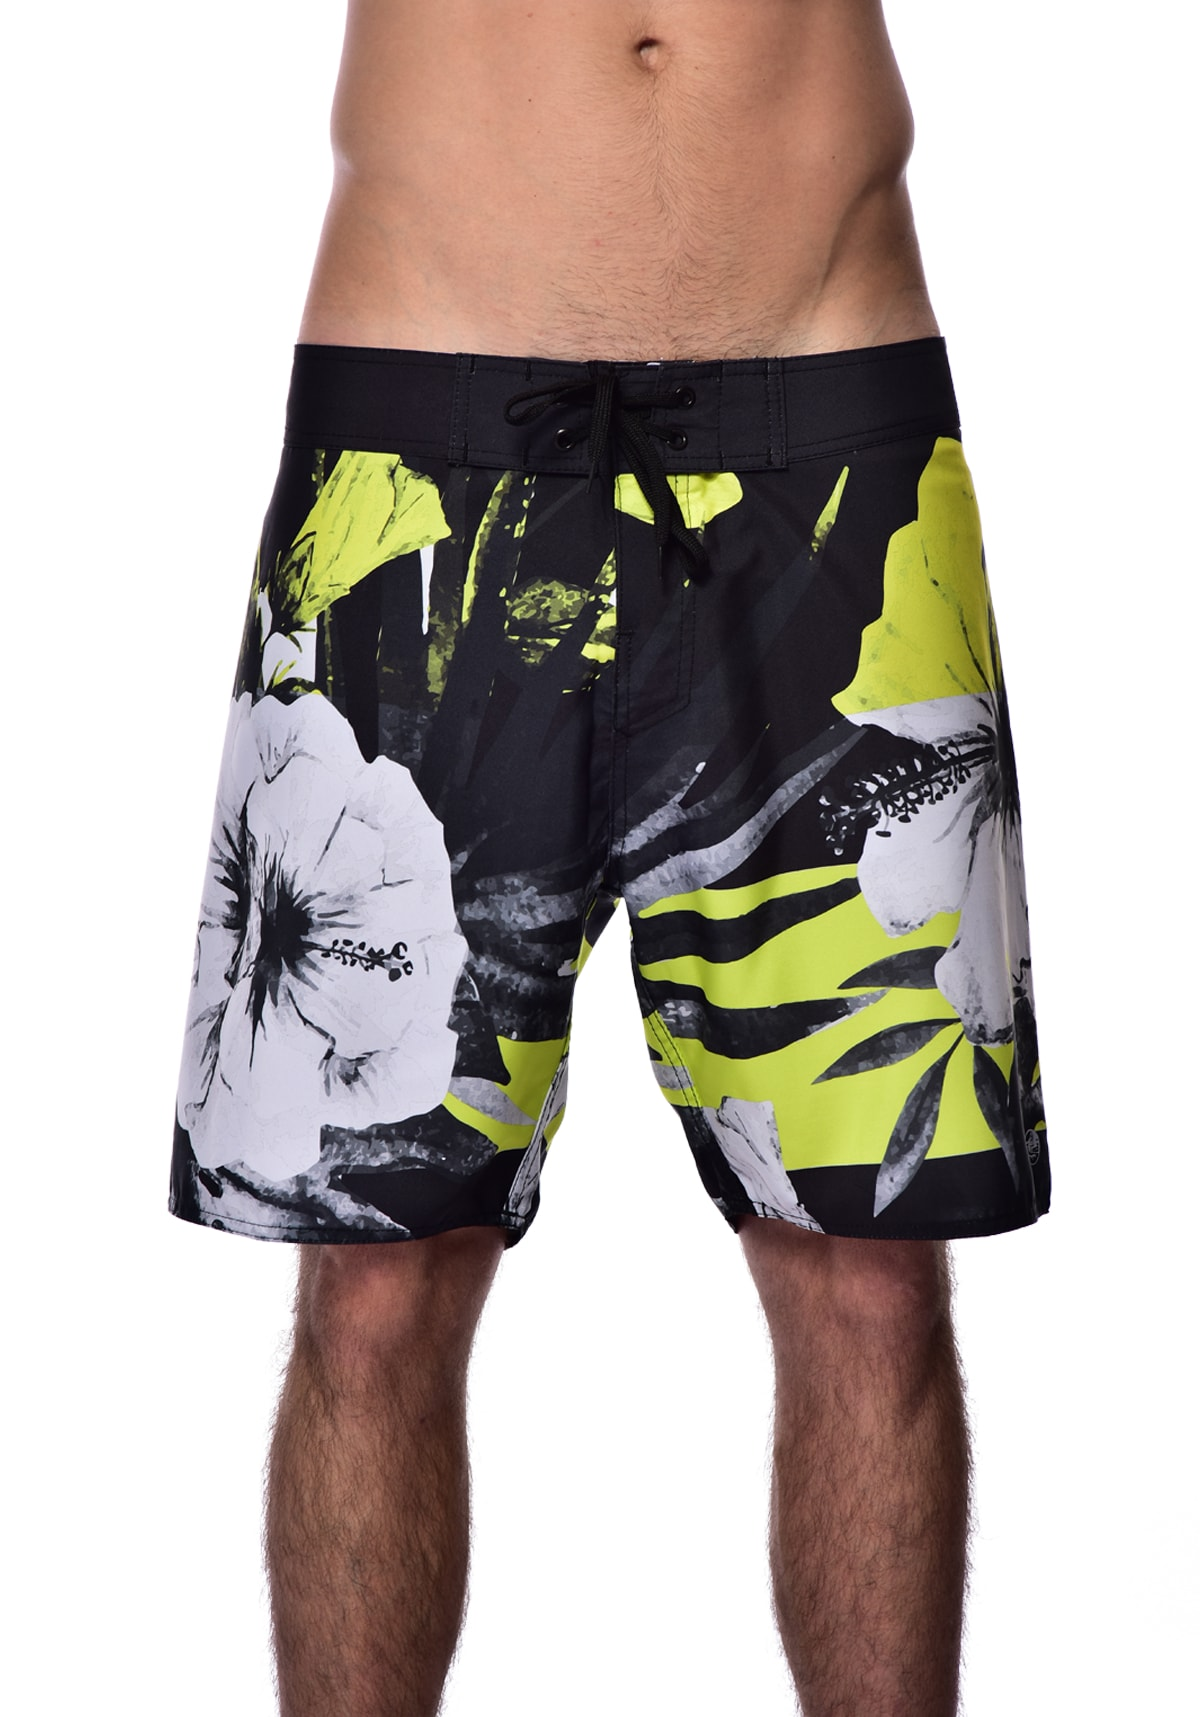 Bermuda Red Nose Boardshort Curto Floral - Preto 38